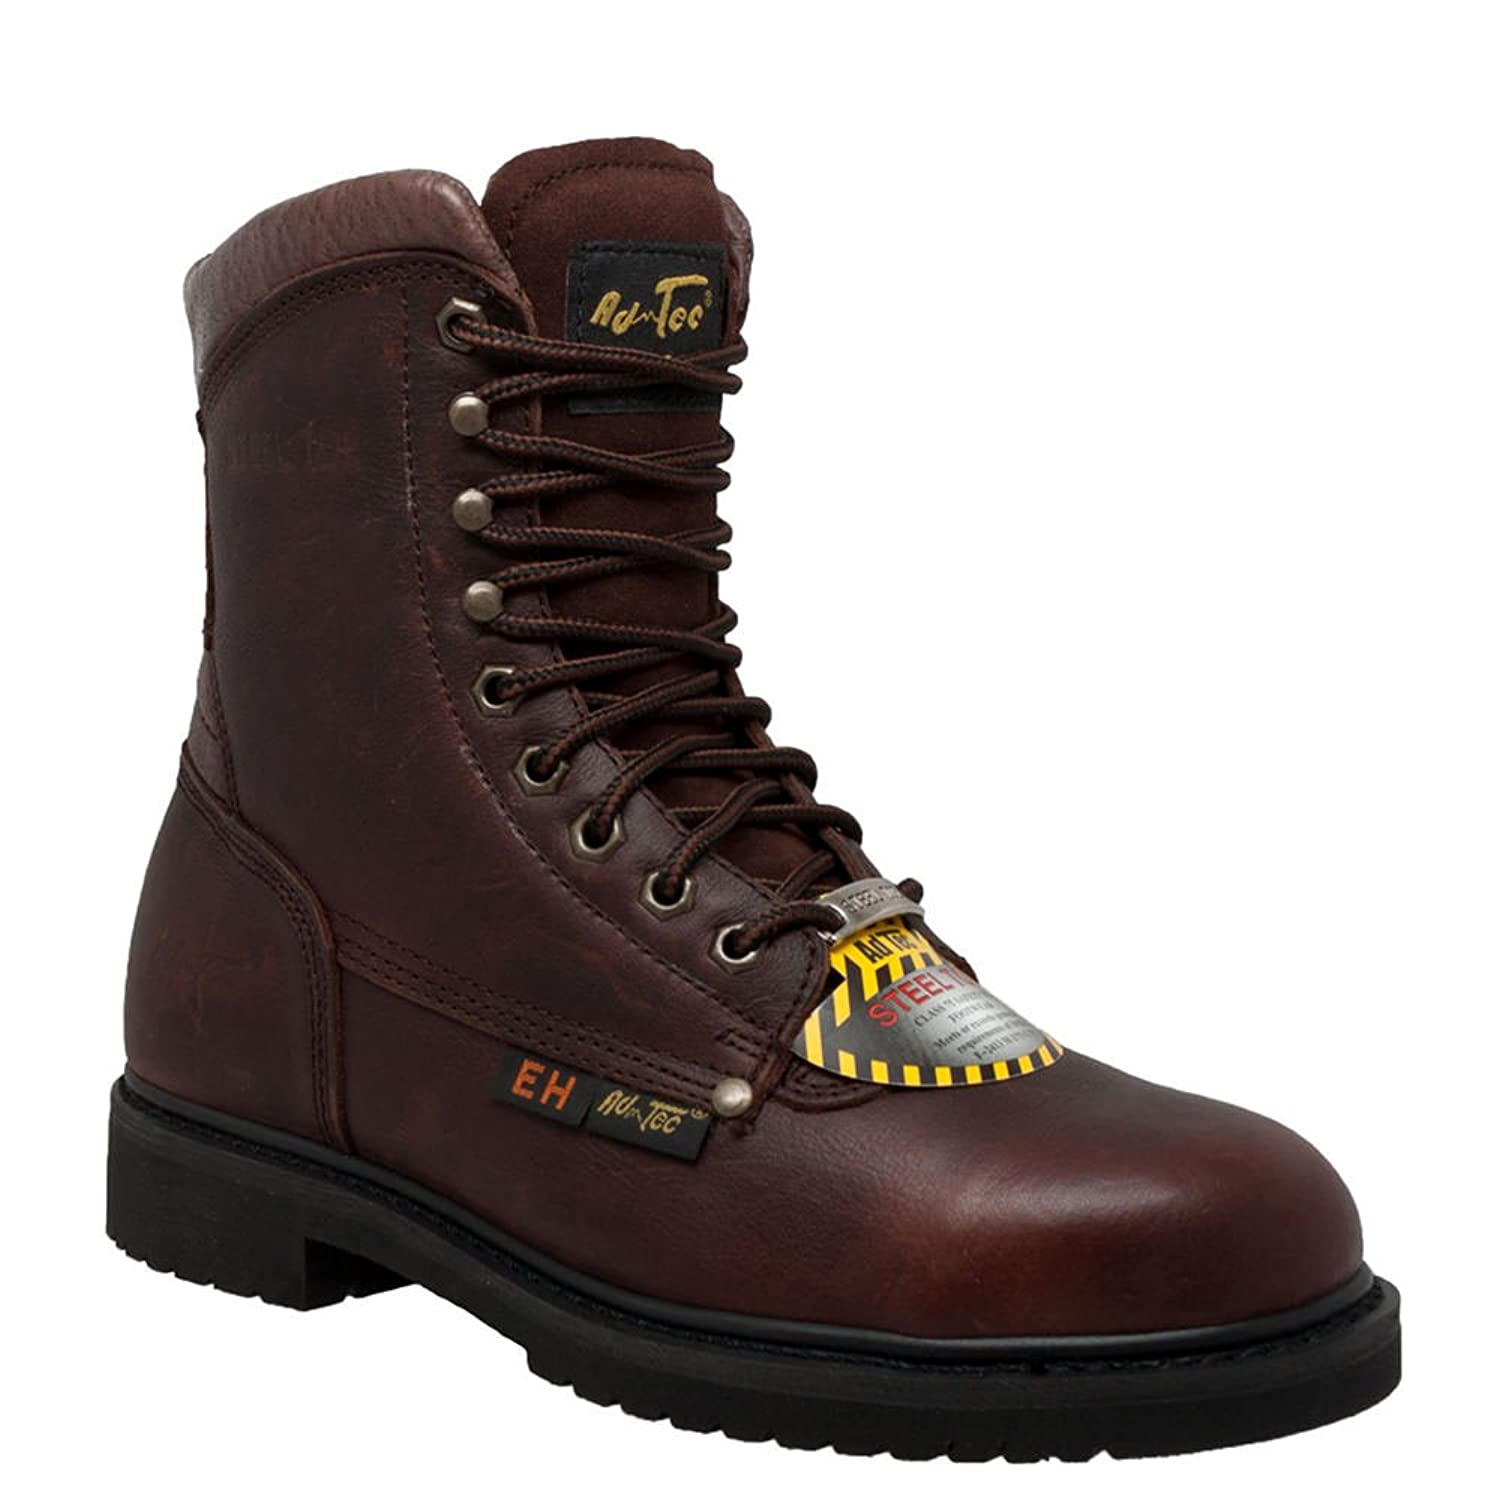 "AdTec Men's 1050 8"" Steel Toe Brown Work Boot"